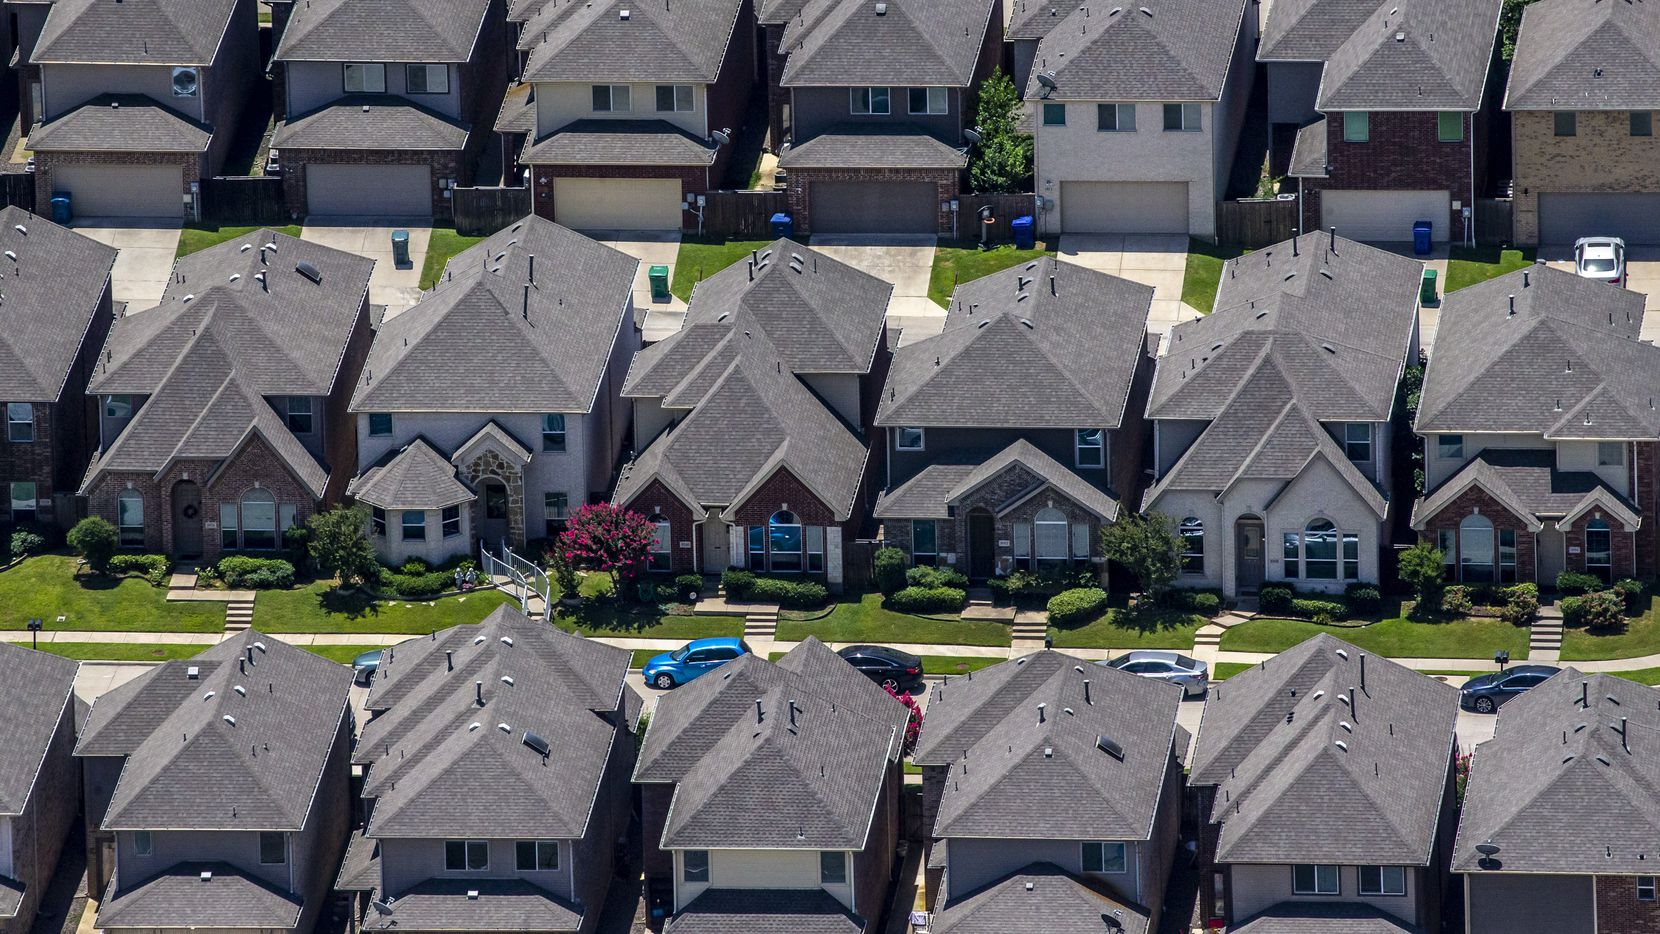 The $3.5 billion Reunion community is a project of Dallas-based PMB Capital Investments.